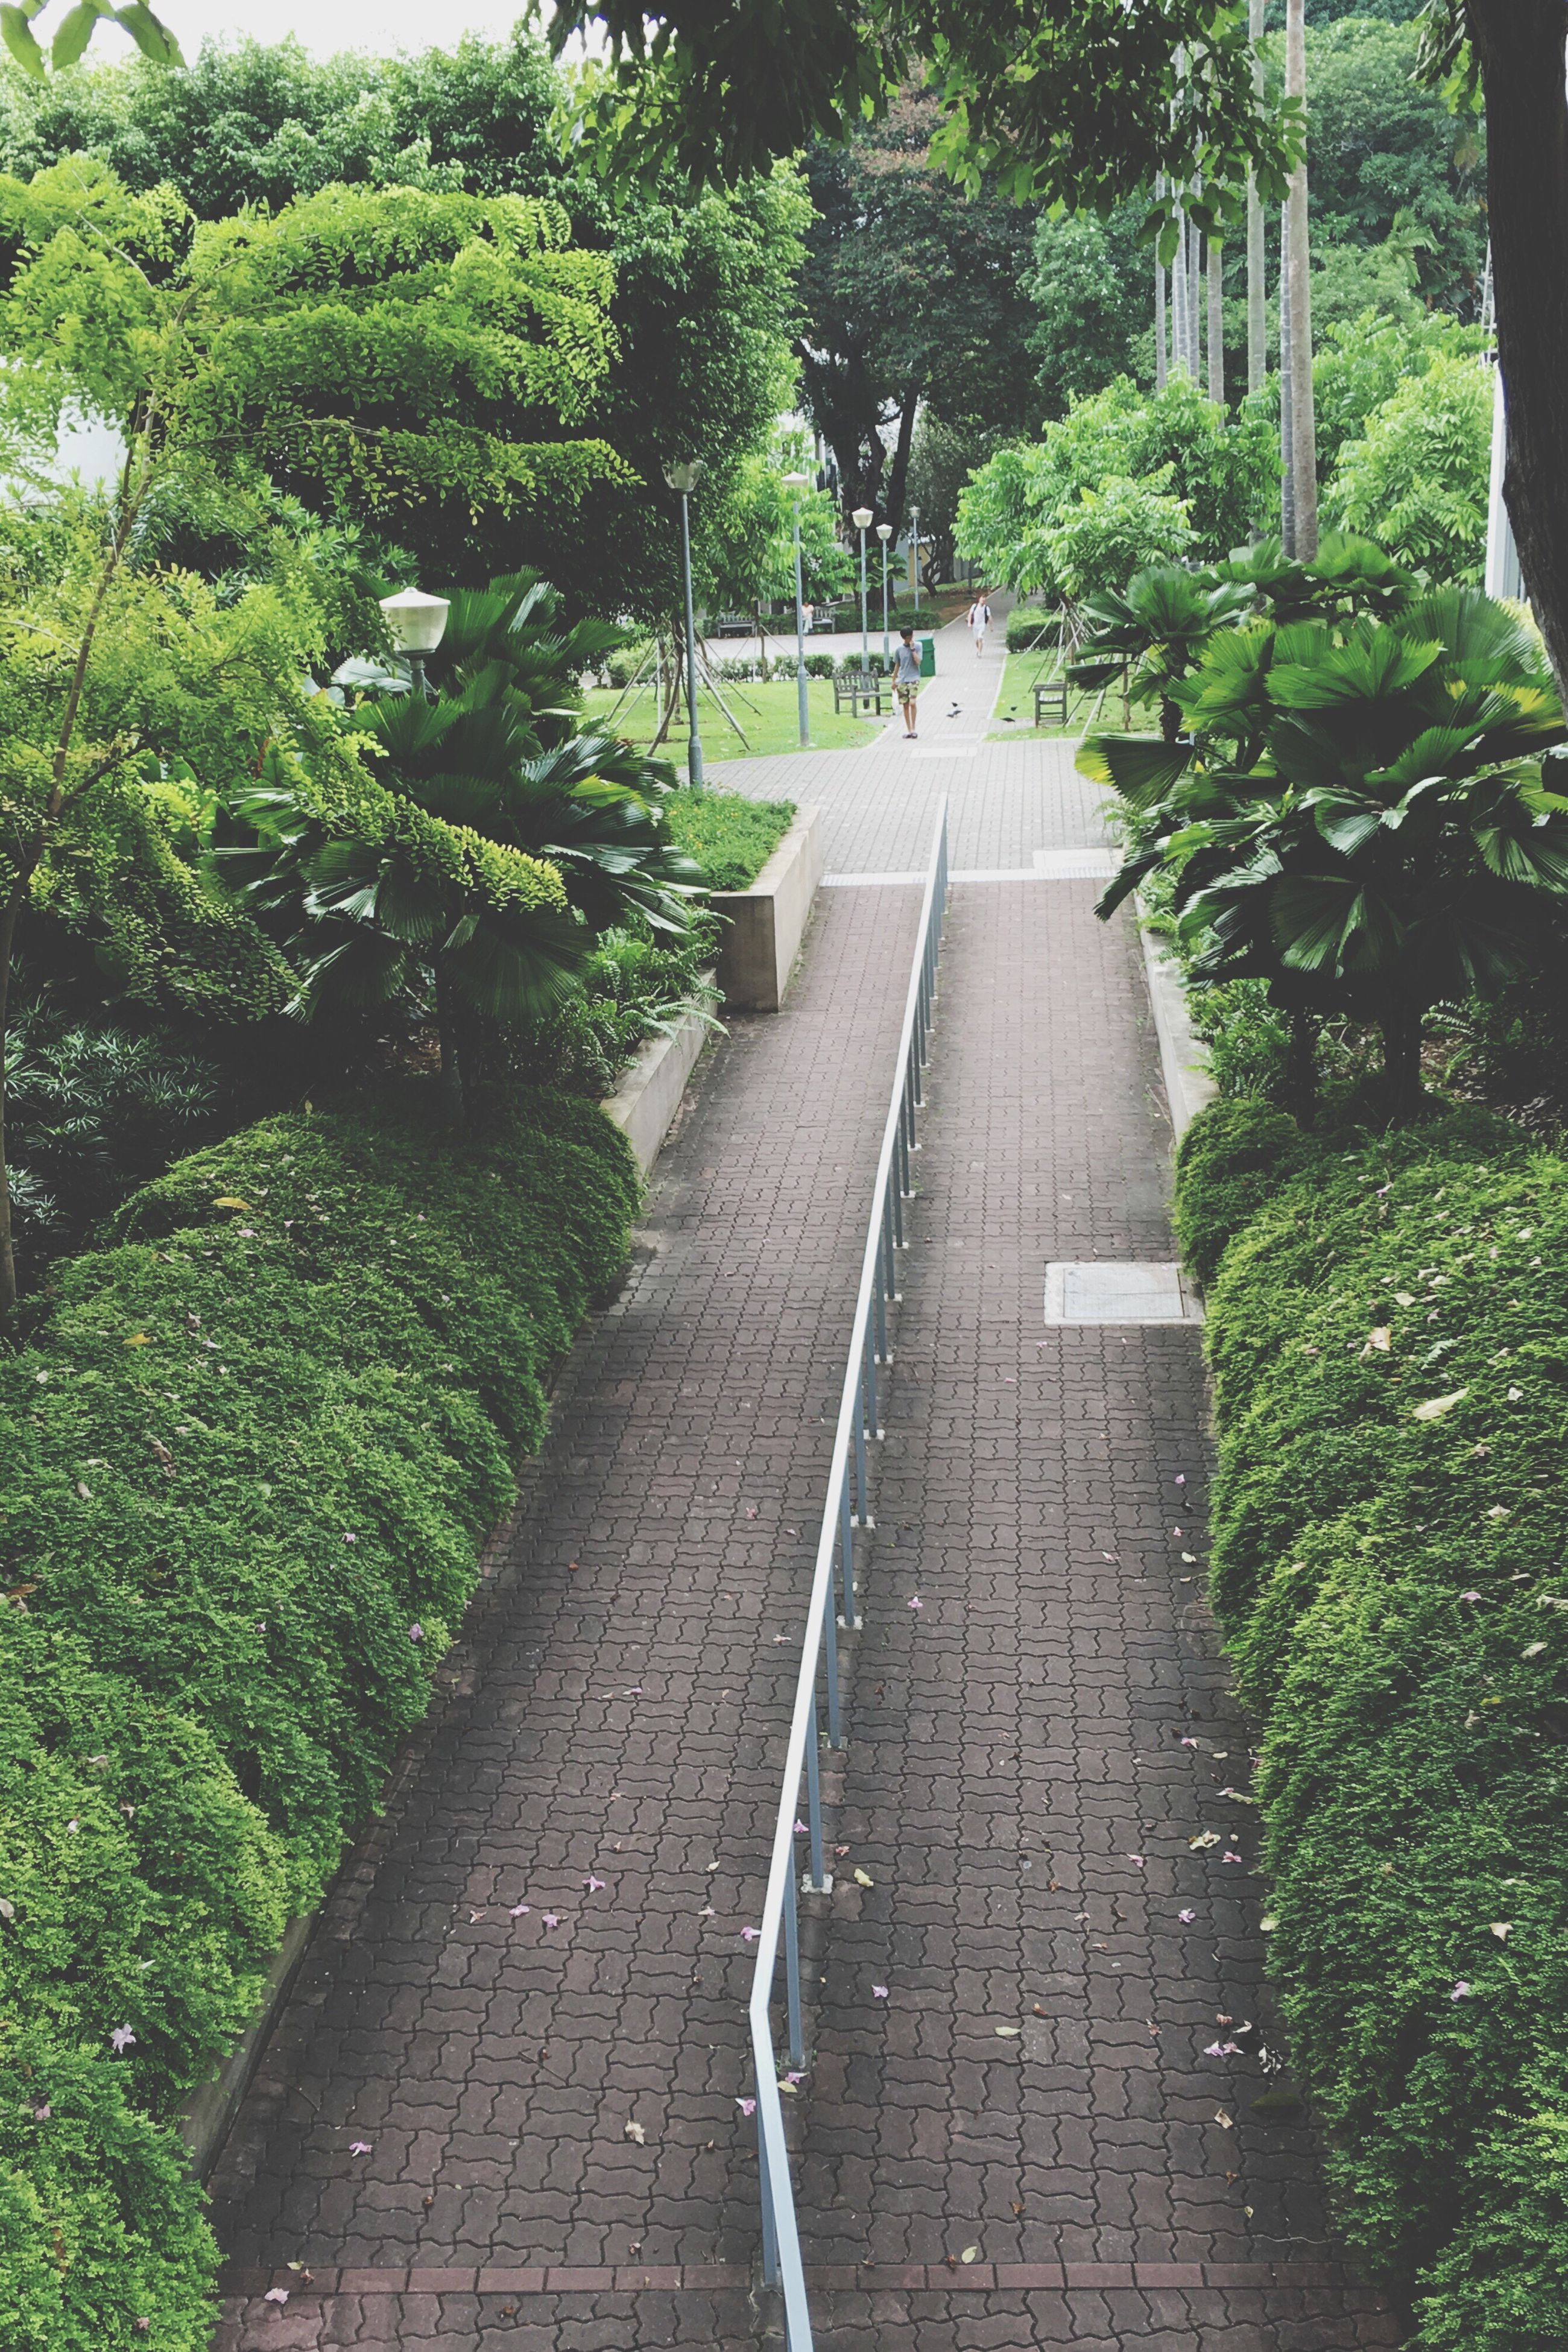 tree, the way forward, green color, growth, plant, park - man made space, steps, footpath, built structure, sunlight, formal garden, walkway, nature, no people, lush foliage, architecture, steps and staircases, railing, diminishing perspective, day